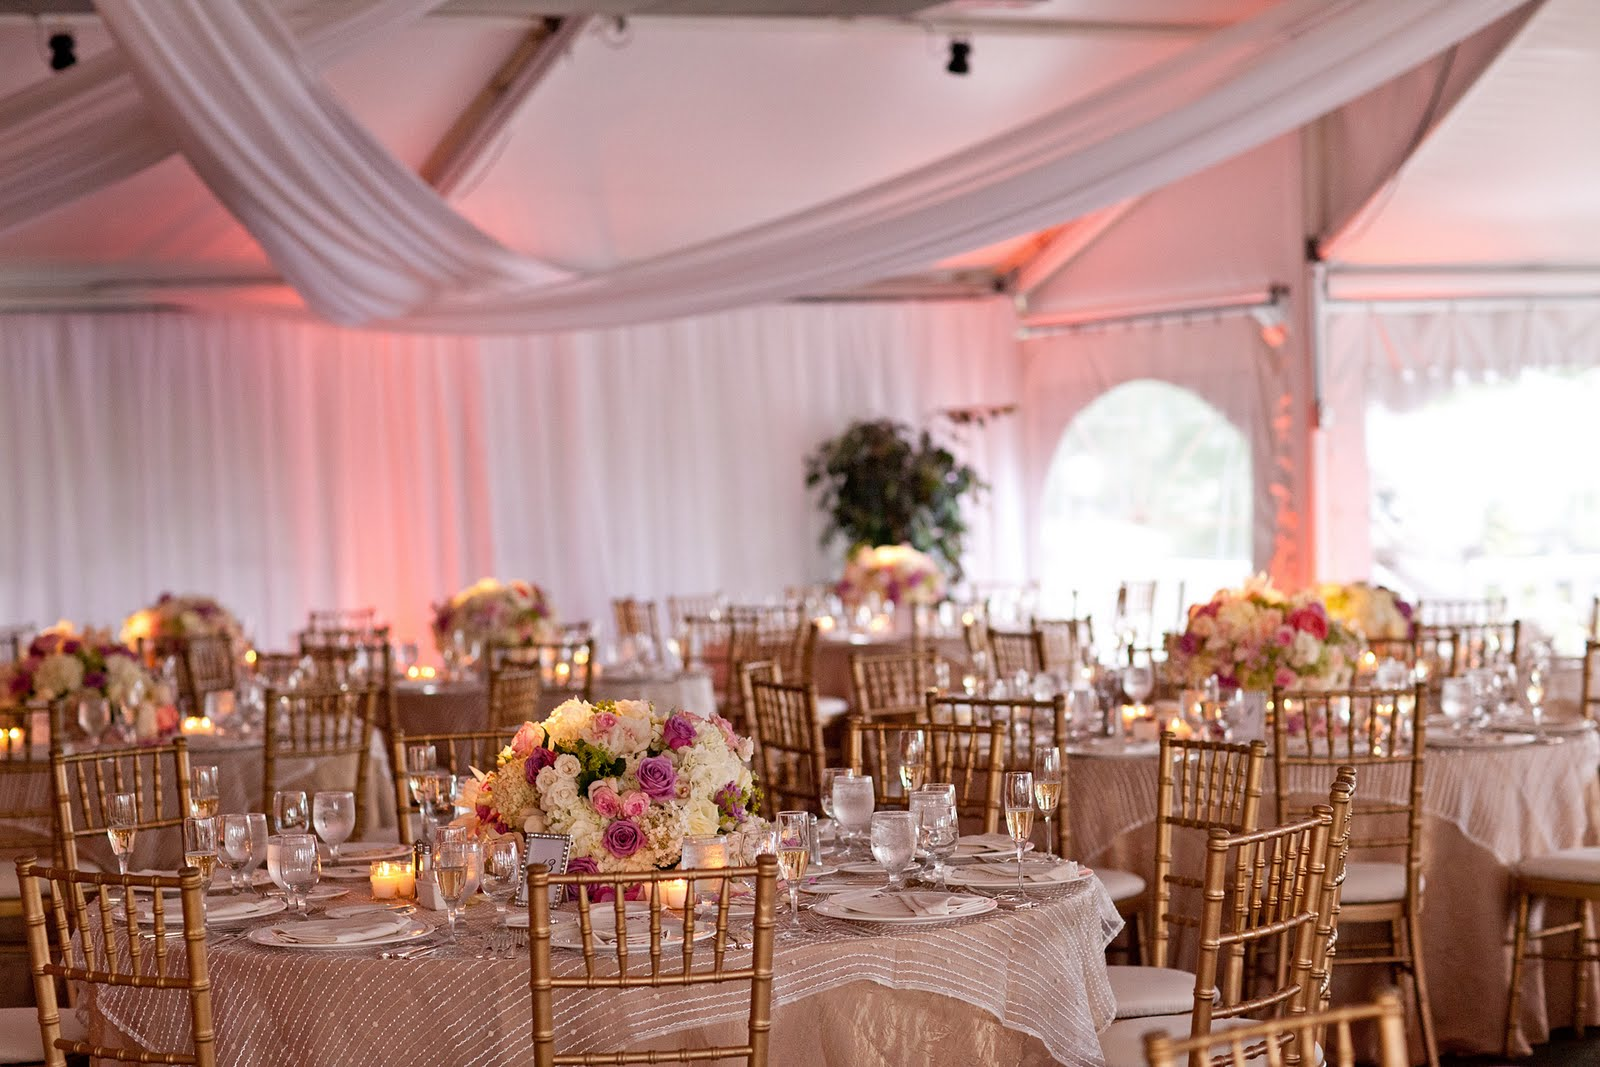 wedding linens how to best dress your tablecloths for wedding Speaking of overlays here is an example of a sheer beaded overlay on lop of a floor length beige tablecloth I am a personal fan of using overlays because